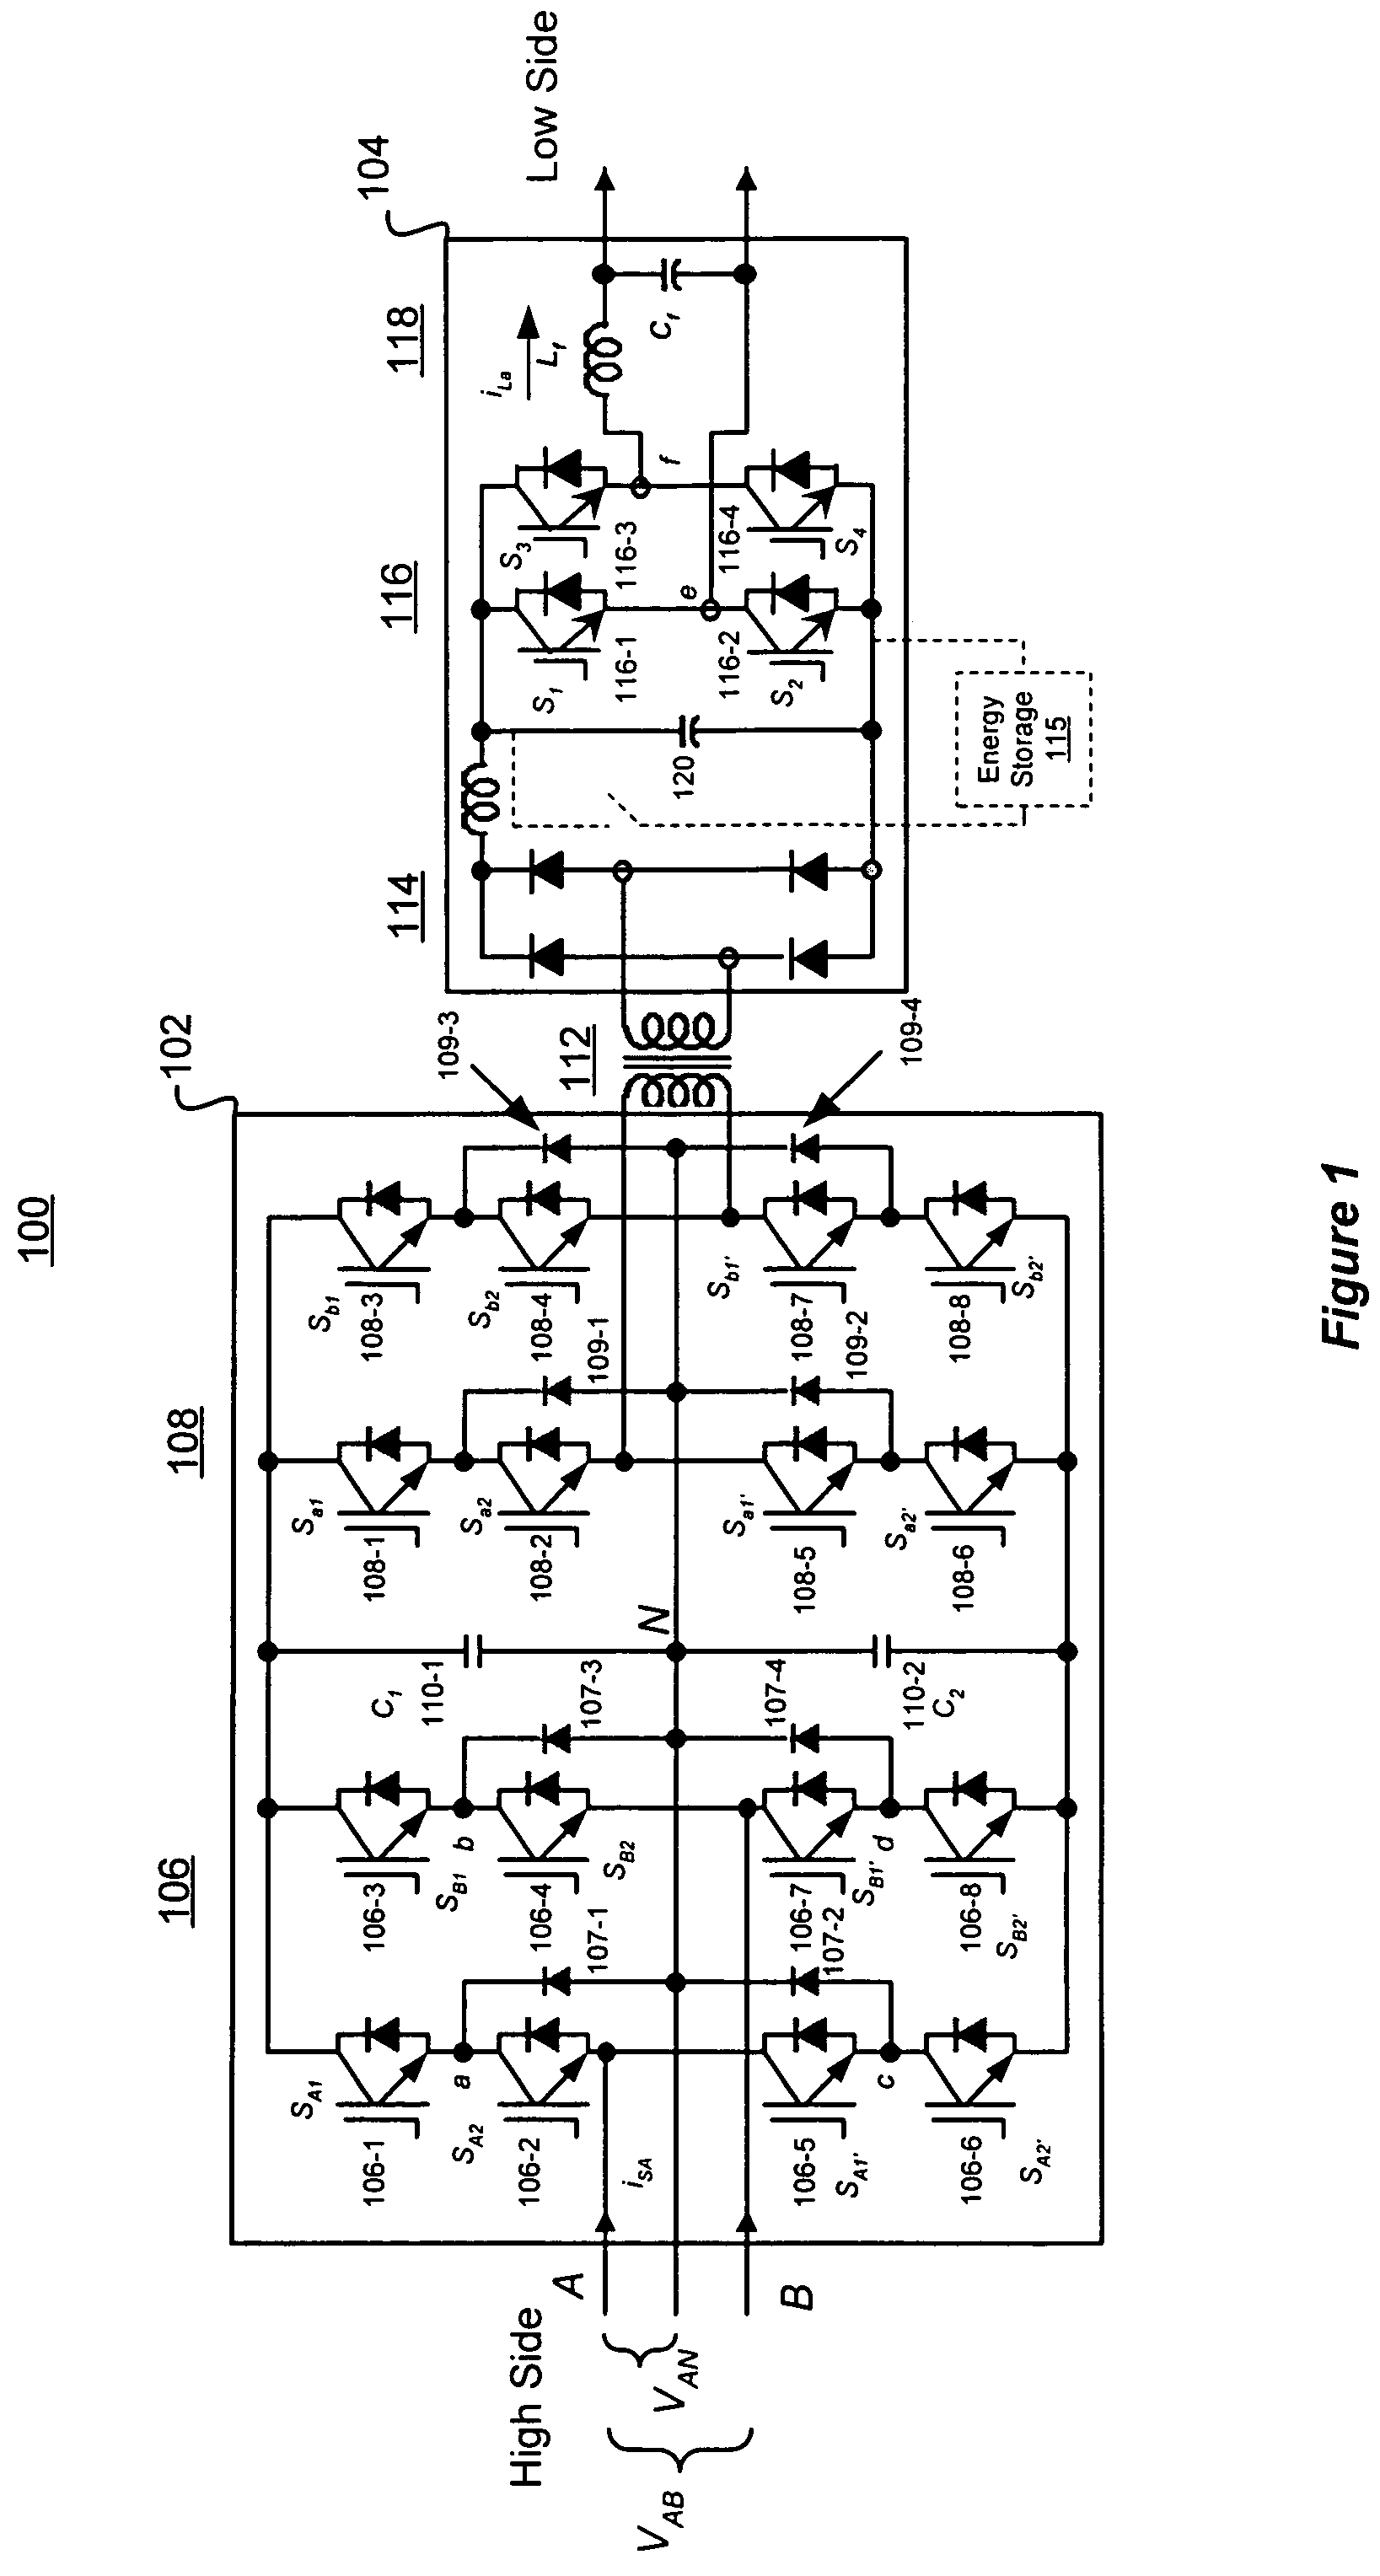 patent us7050311 - multilevel converter based intelligent universal transformer